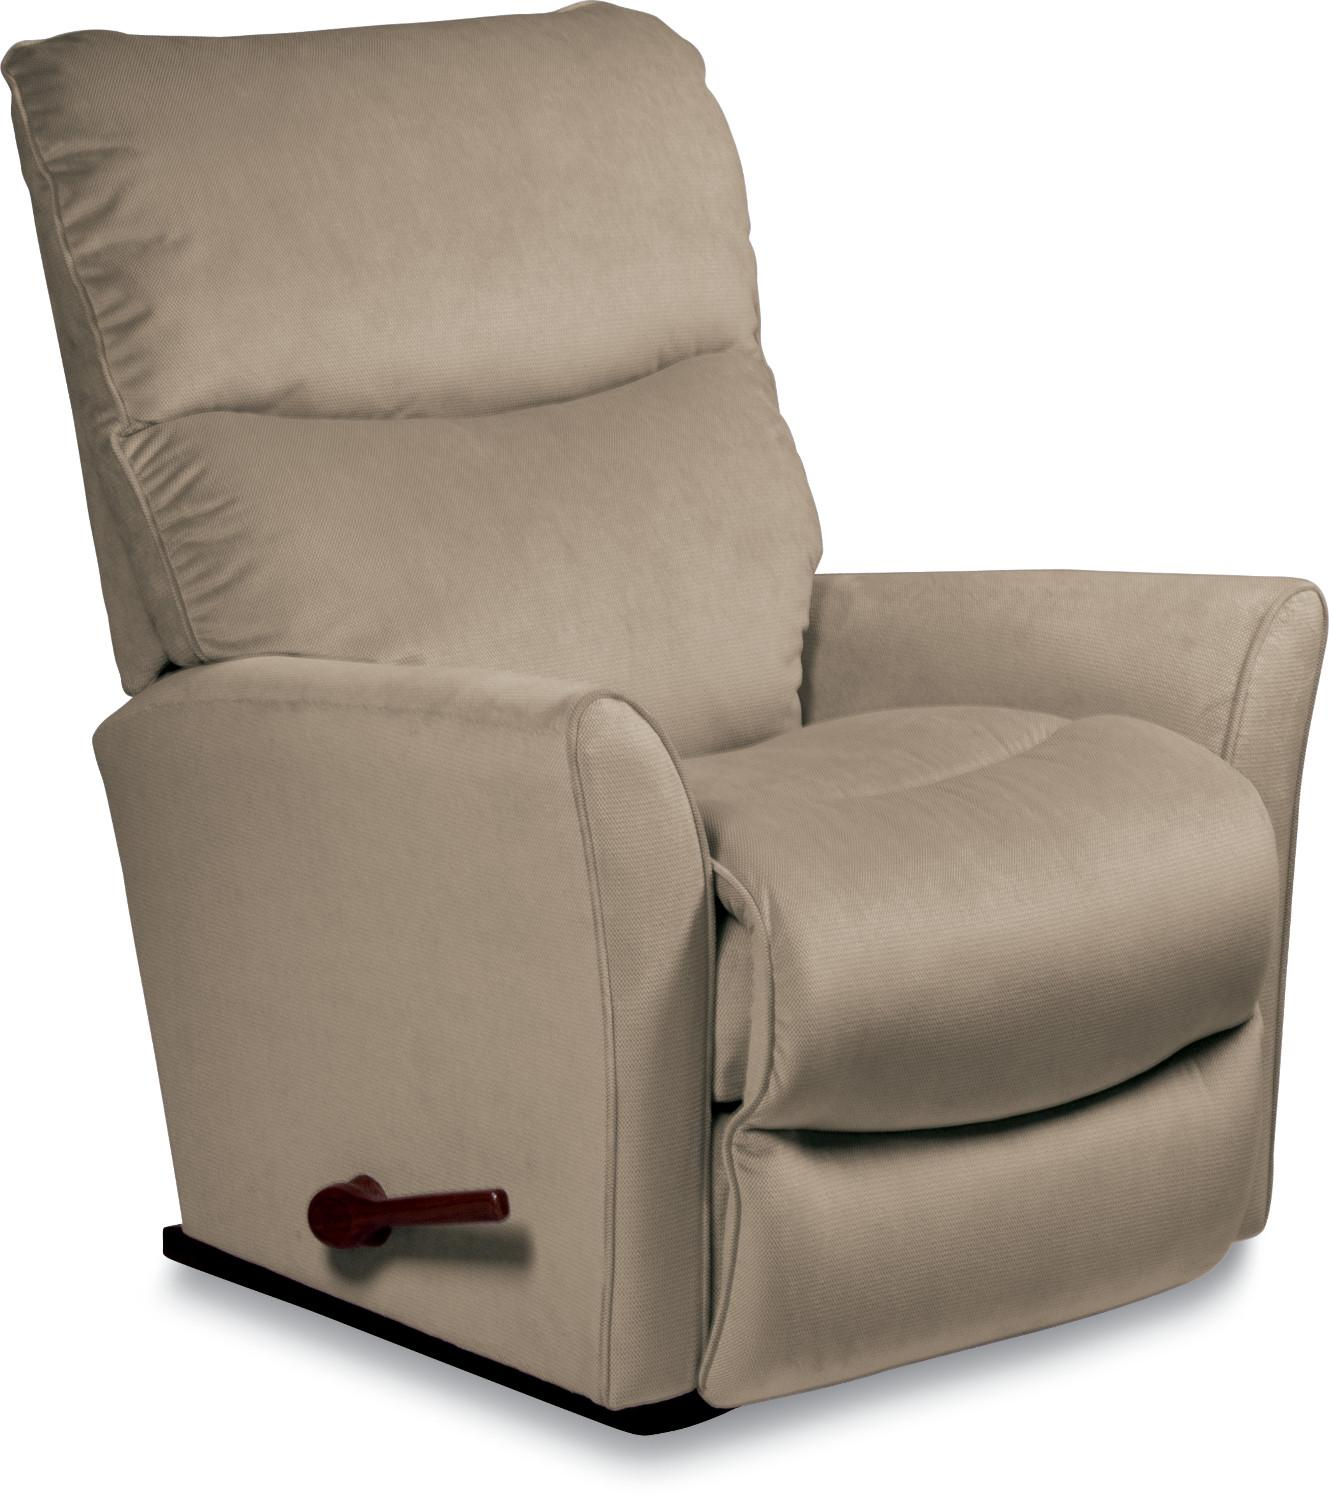 swivel chair small cream recliner chairs la z boy recliners rowan scale reclina glider